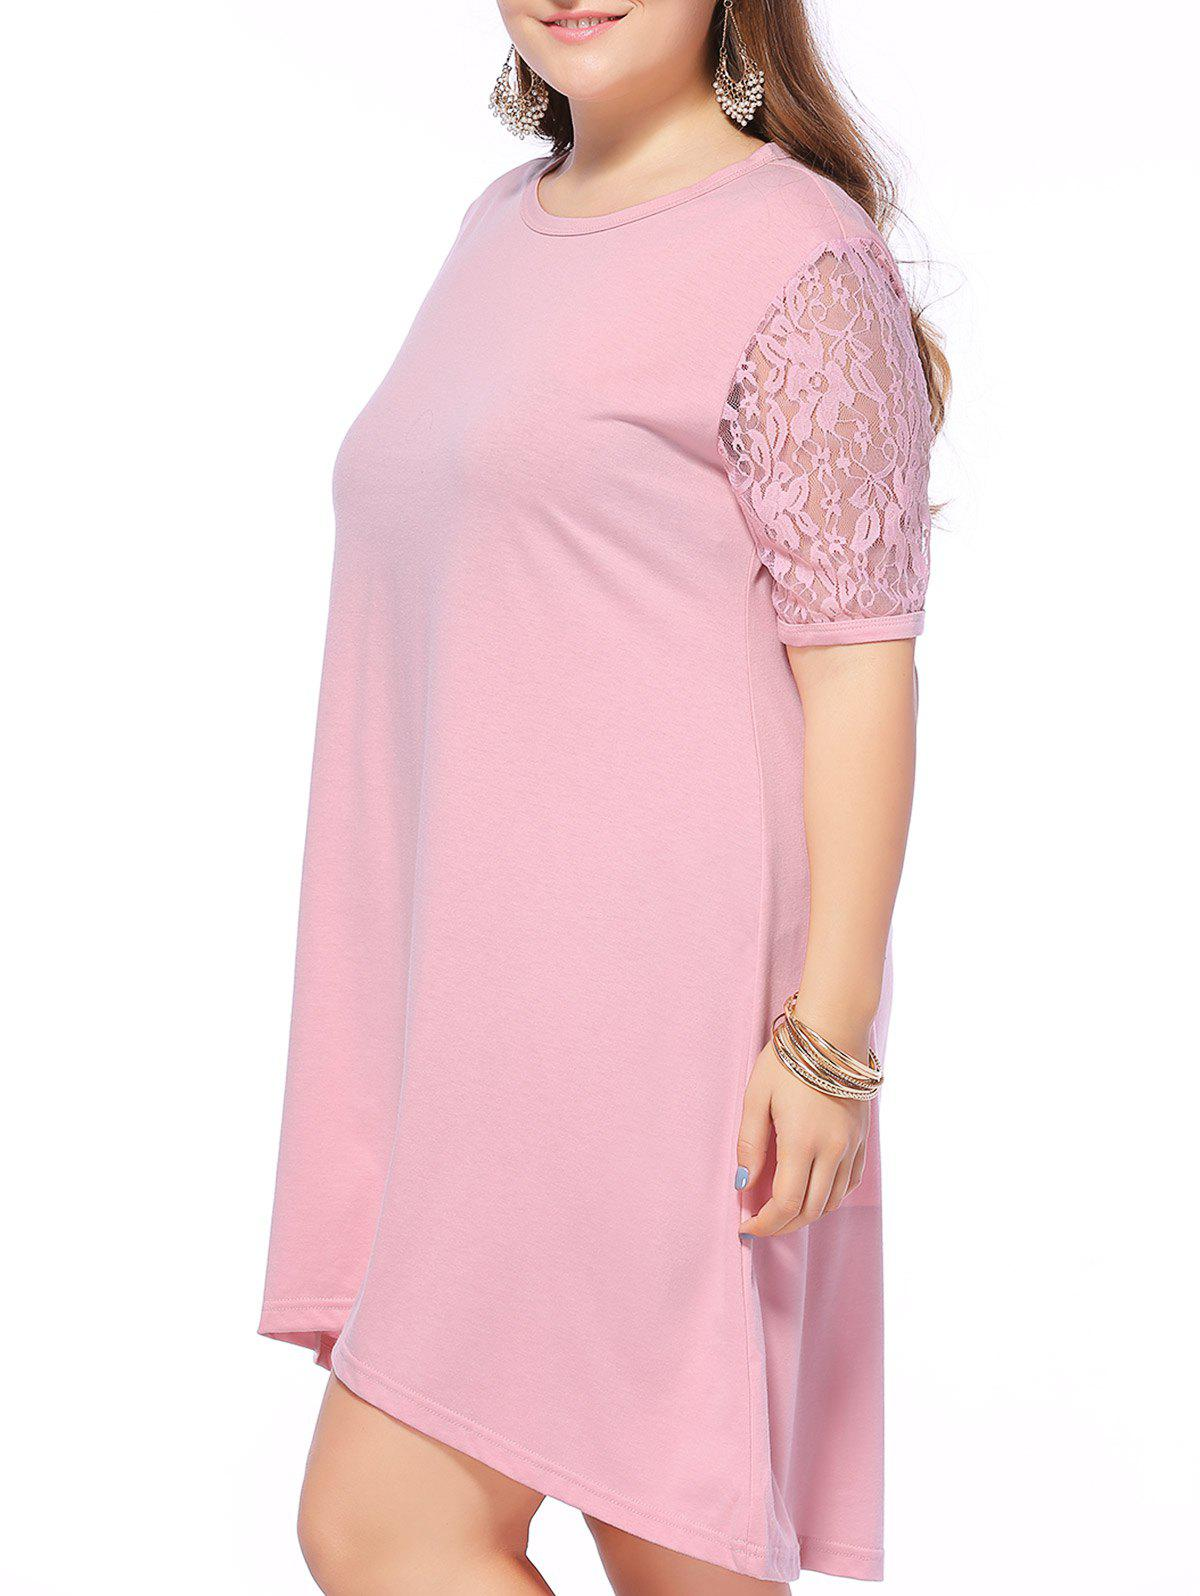 Alluring Plus Size Lace Spliced High Low Dress